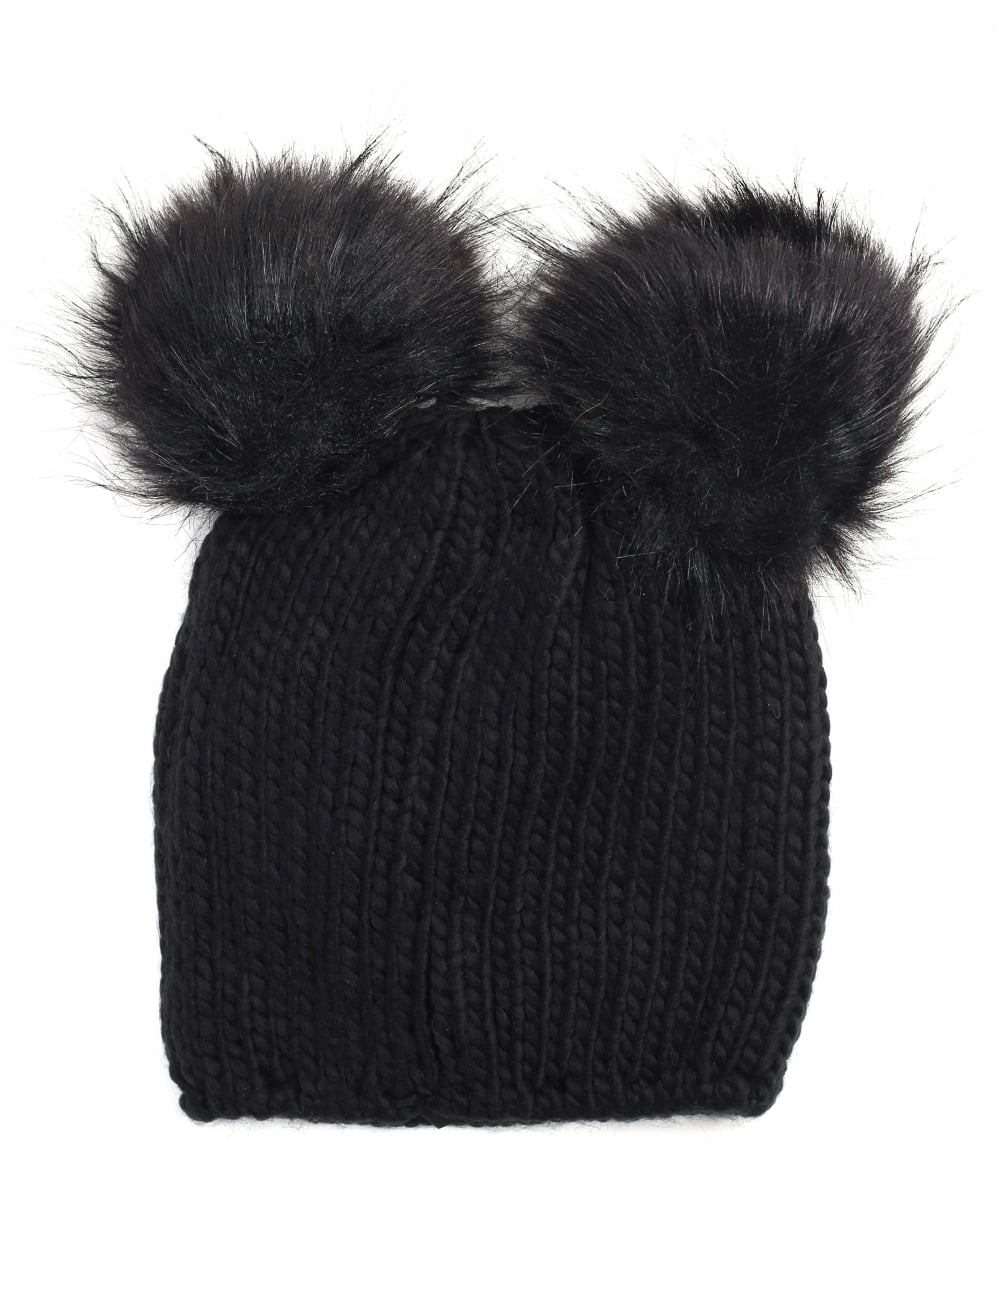 Rino   Pelle Women s Double Faux Fur Pom Pom Hat 9d0afb51477